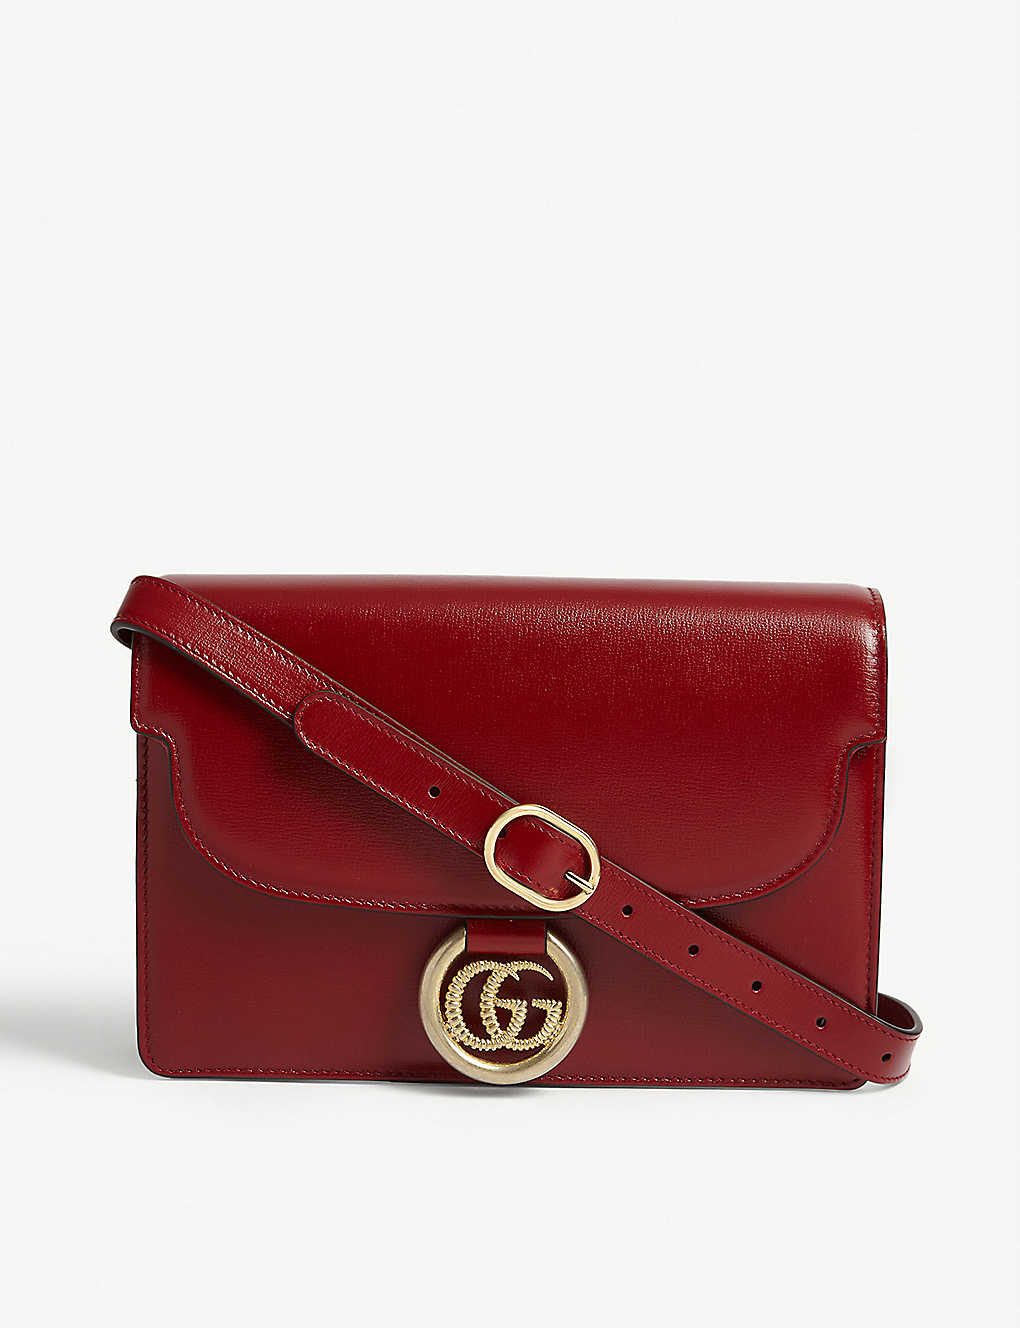 $1,835 ( Was $2590 ) GUCCI GG logo leather crossbody bag @ Selfridges